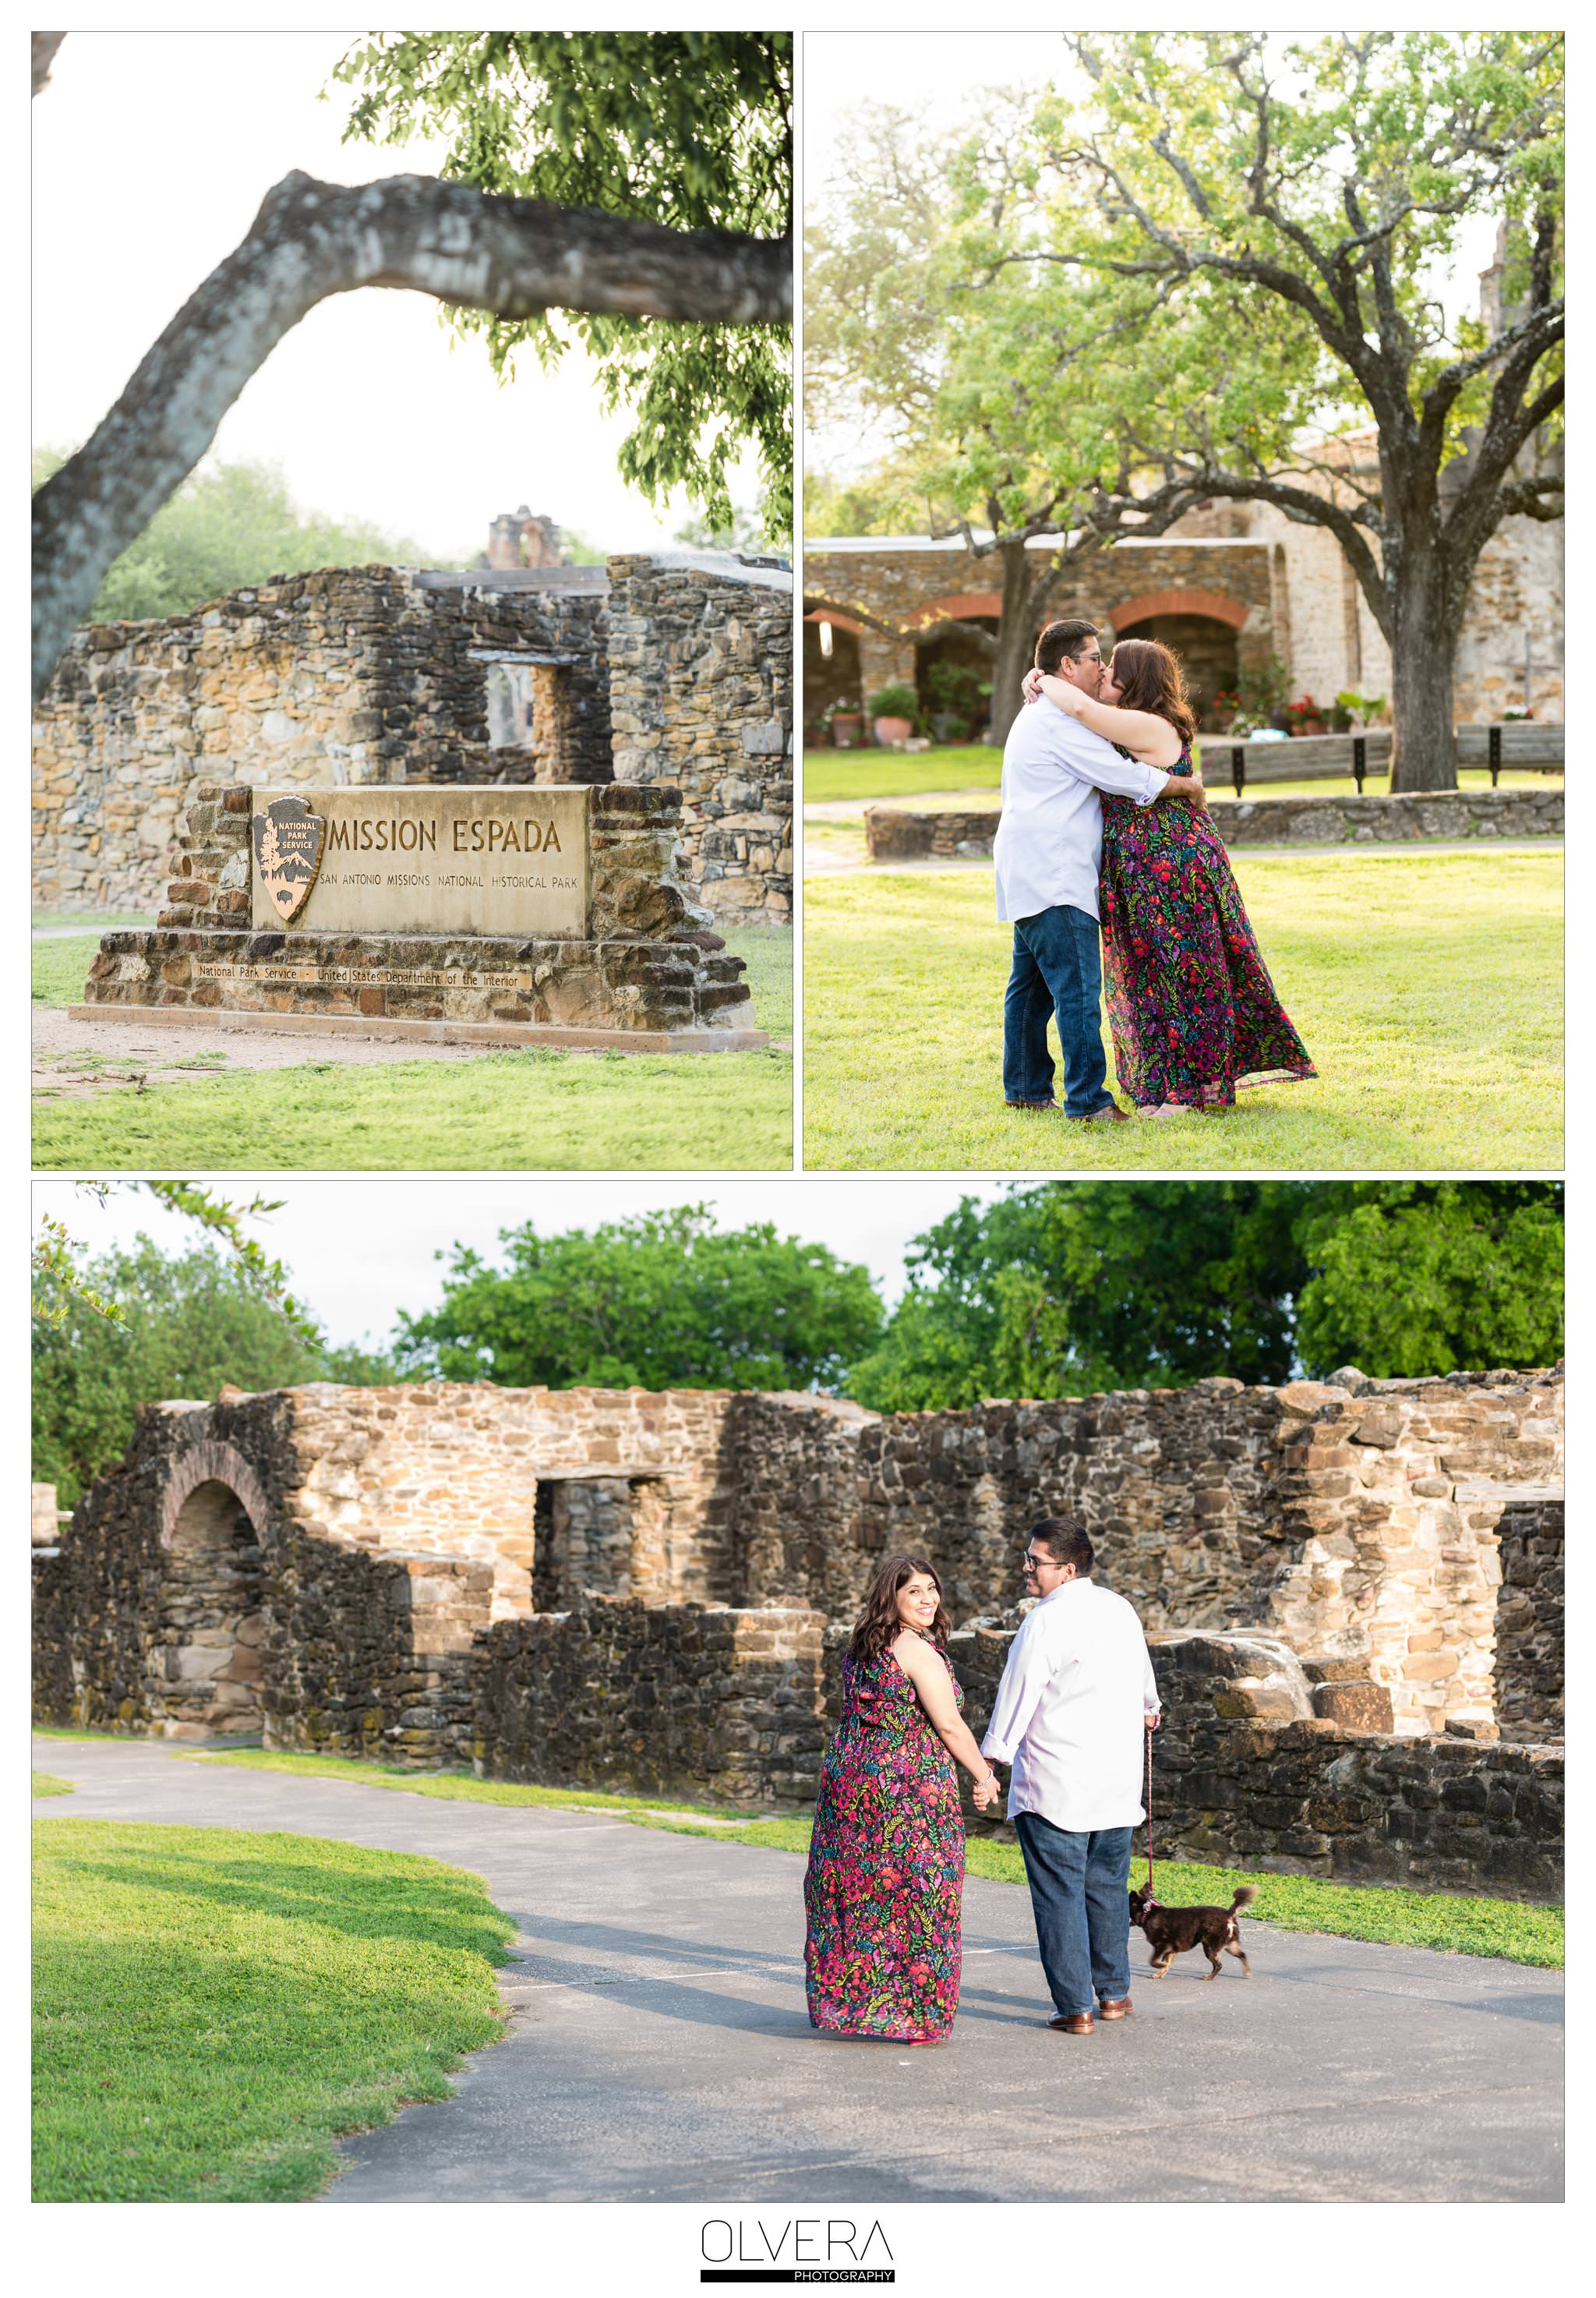 Mission-Espada-Engagement-photos- san antonio wedding photographer 4